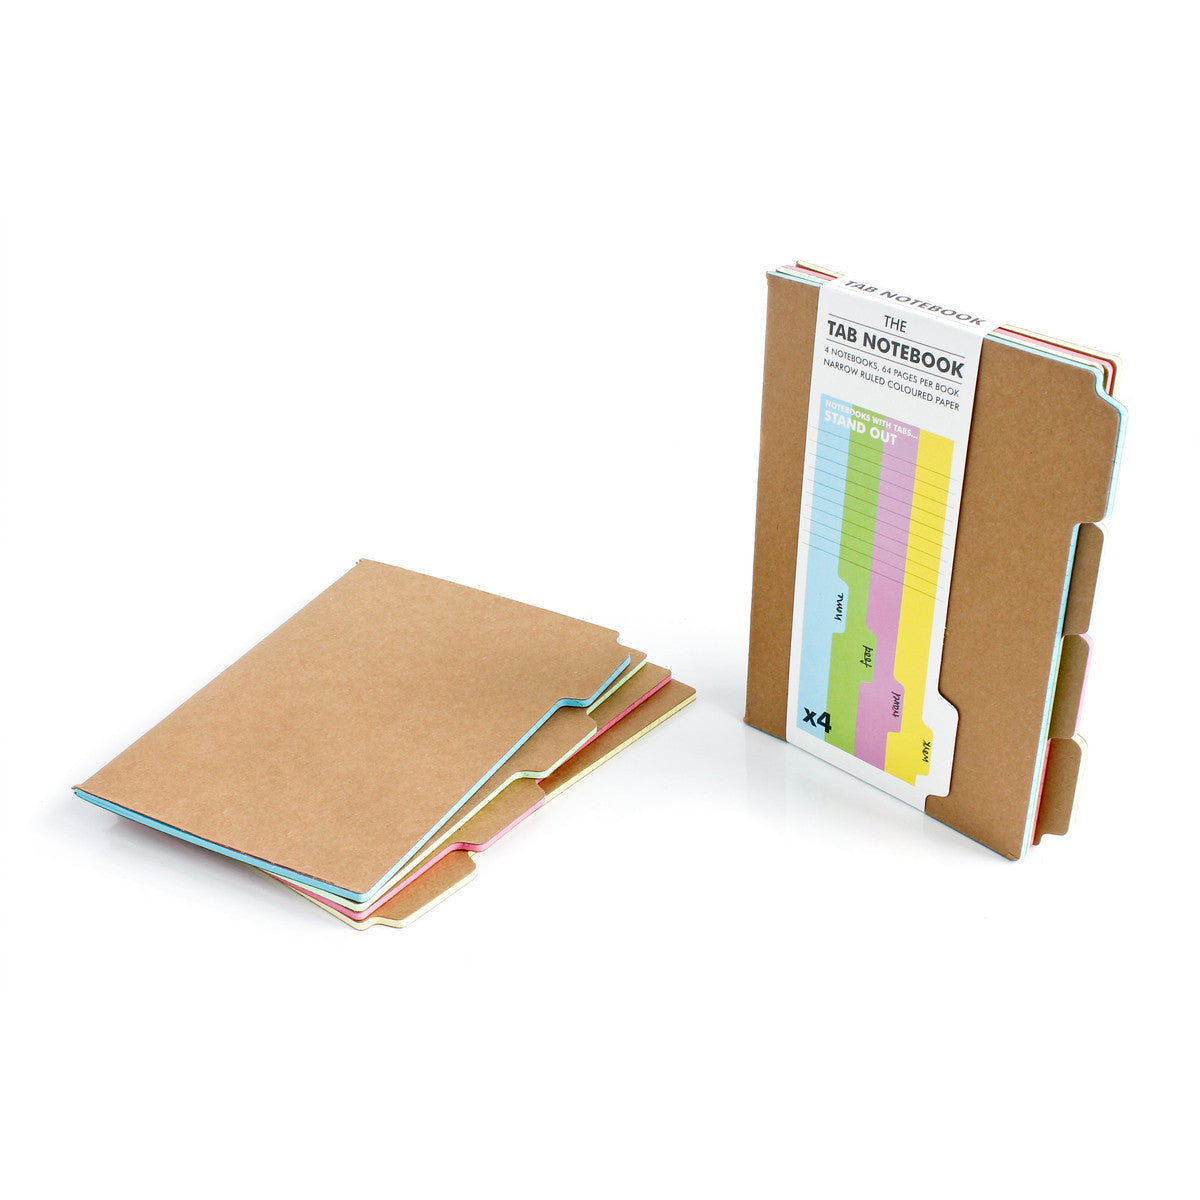 Suck UK Tab Notebook